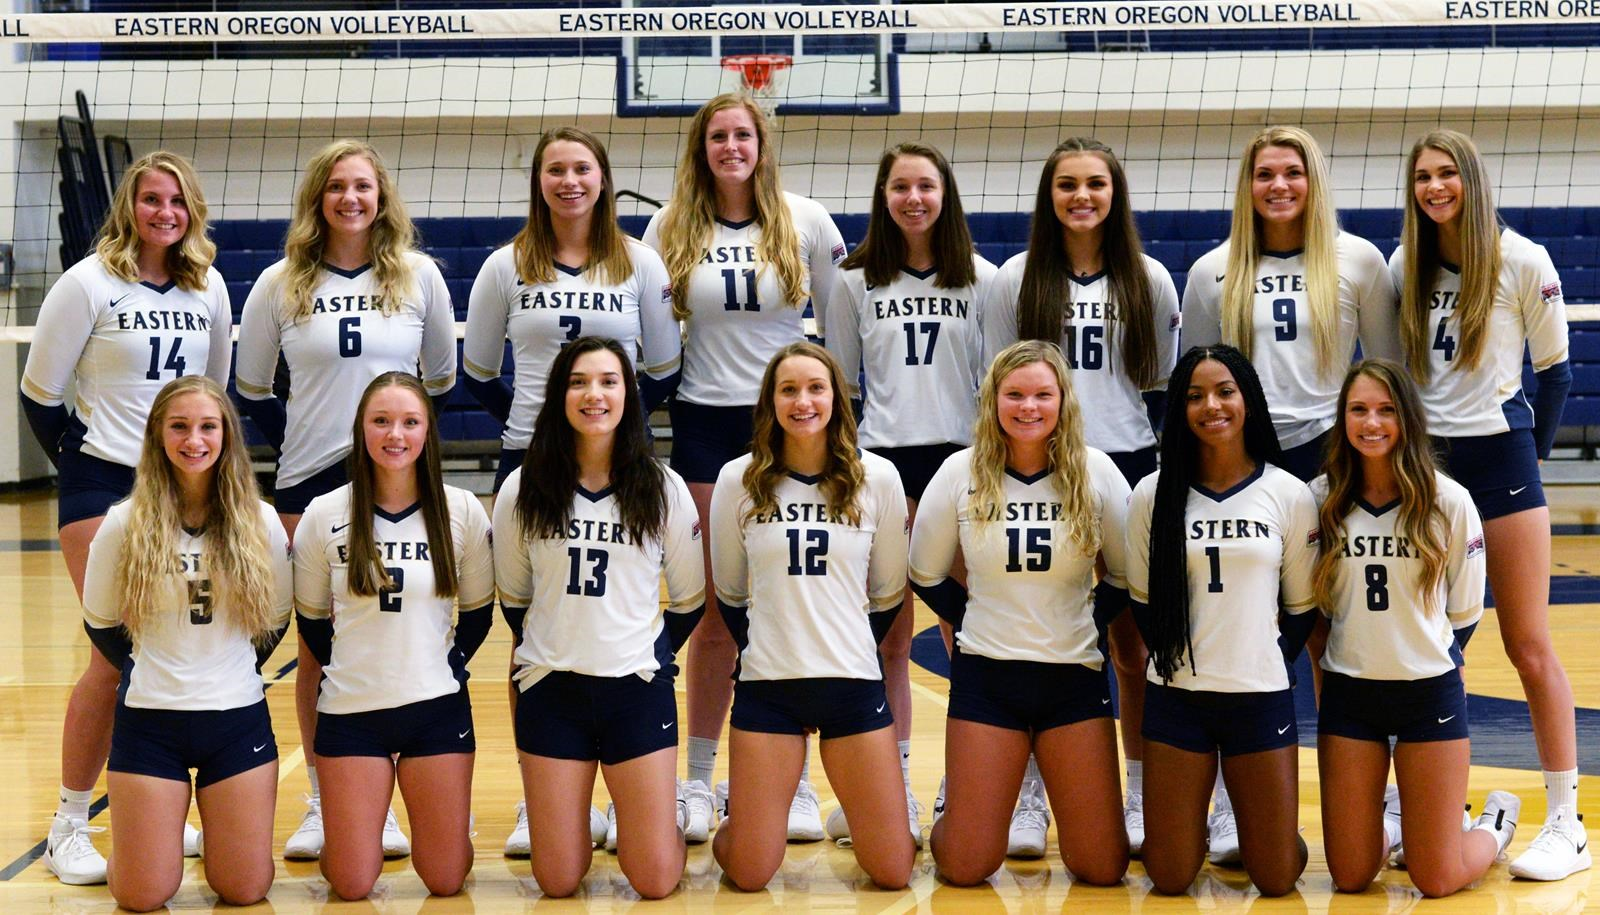 2019 Women S Volleyball Roster Eastern Oregon University Athletics